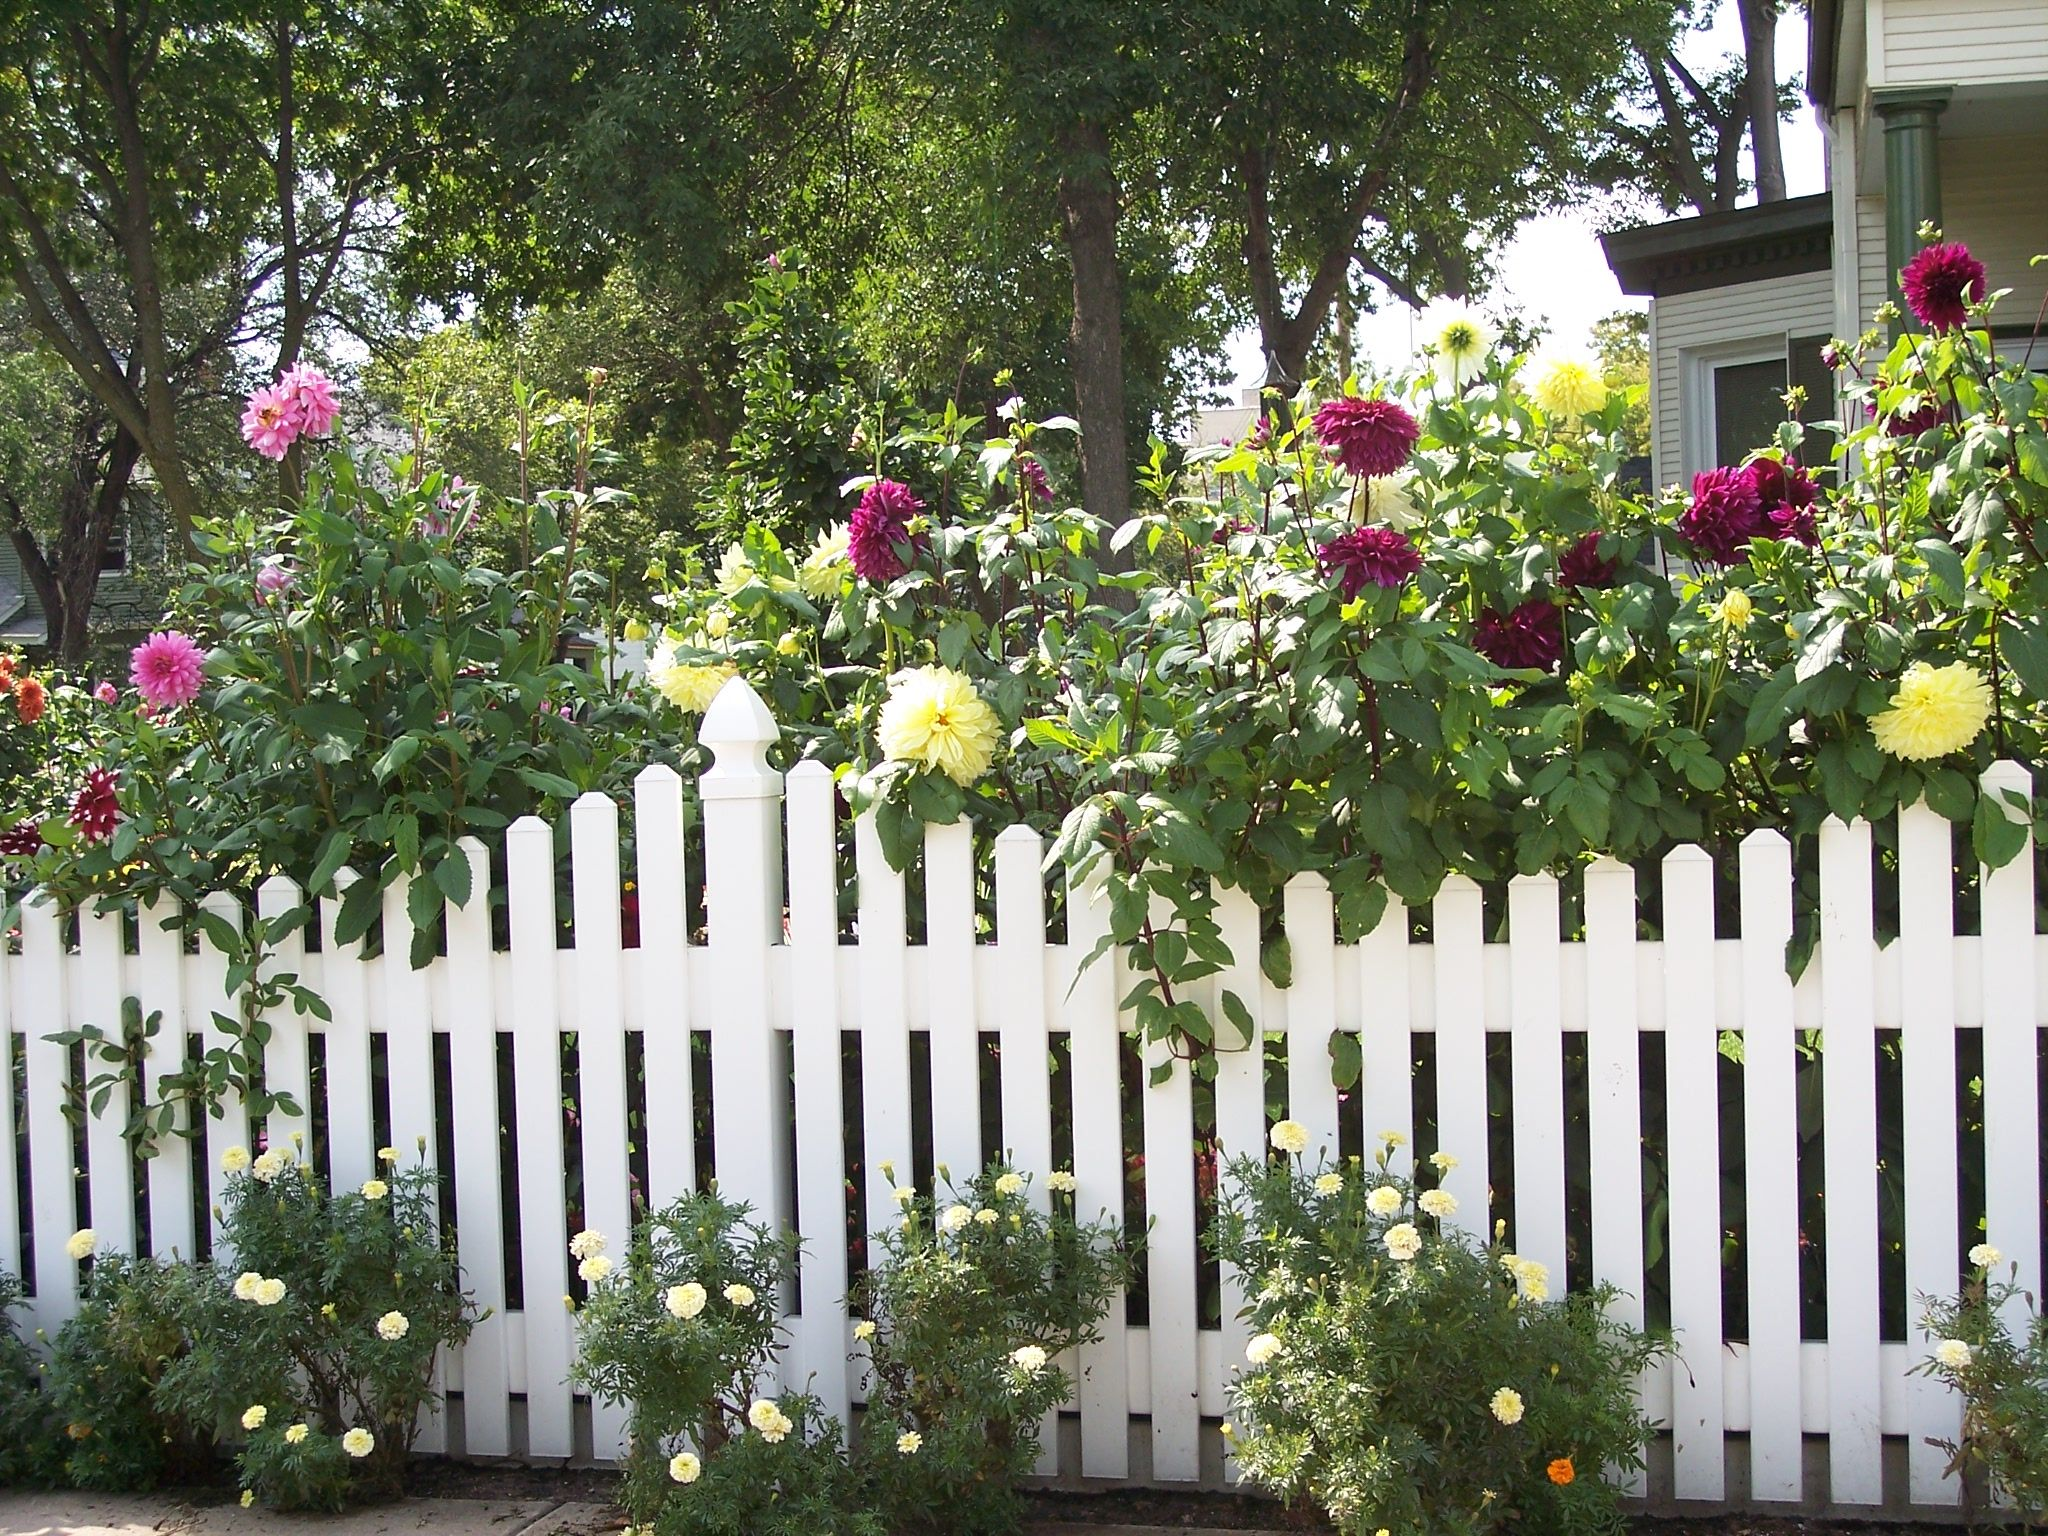 fence against the background of flowers the picturesque scenery